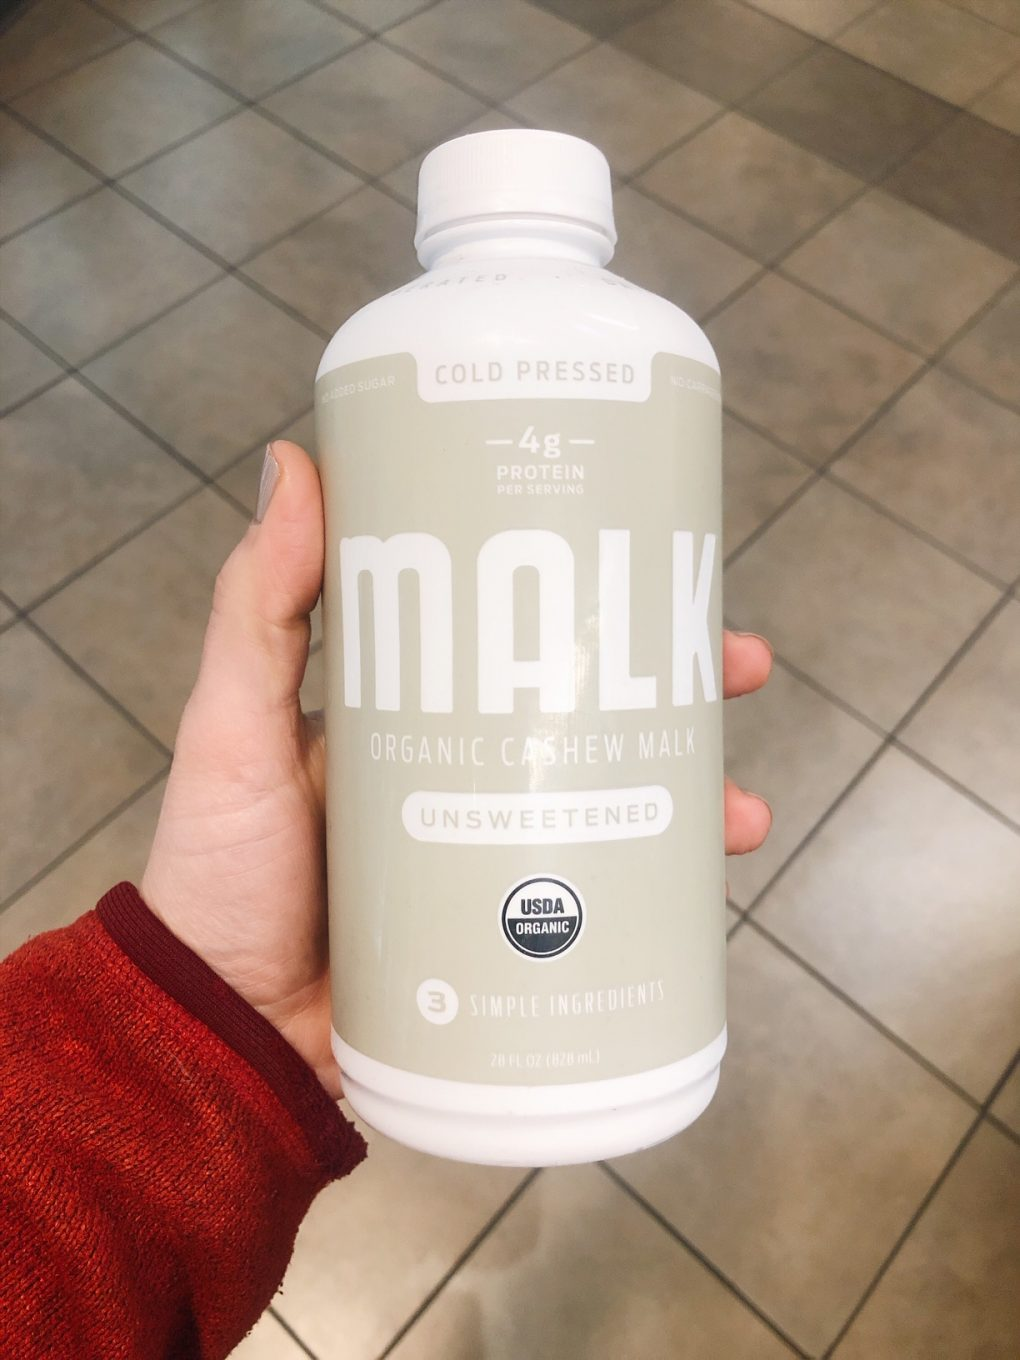 Holding a bottle of malk organics white label cashew milk in the grocery store